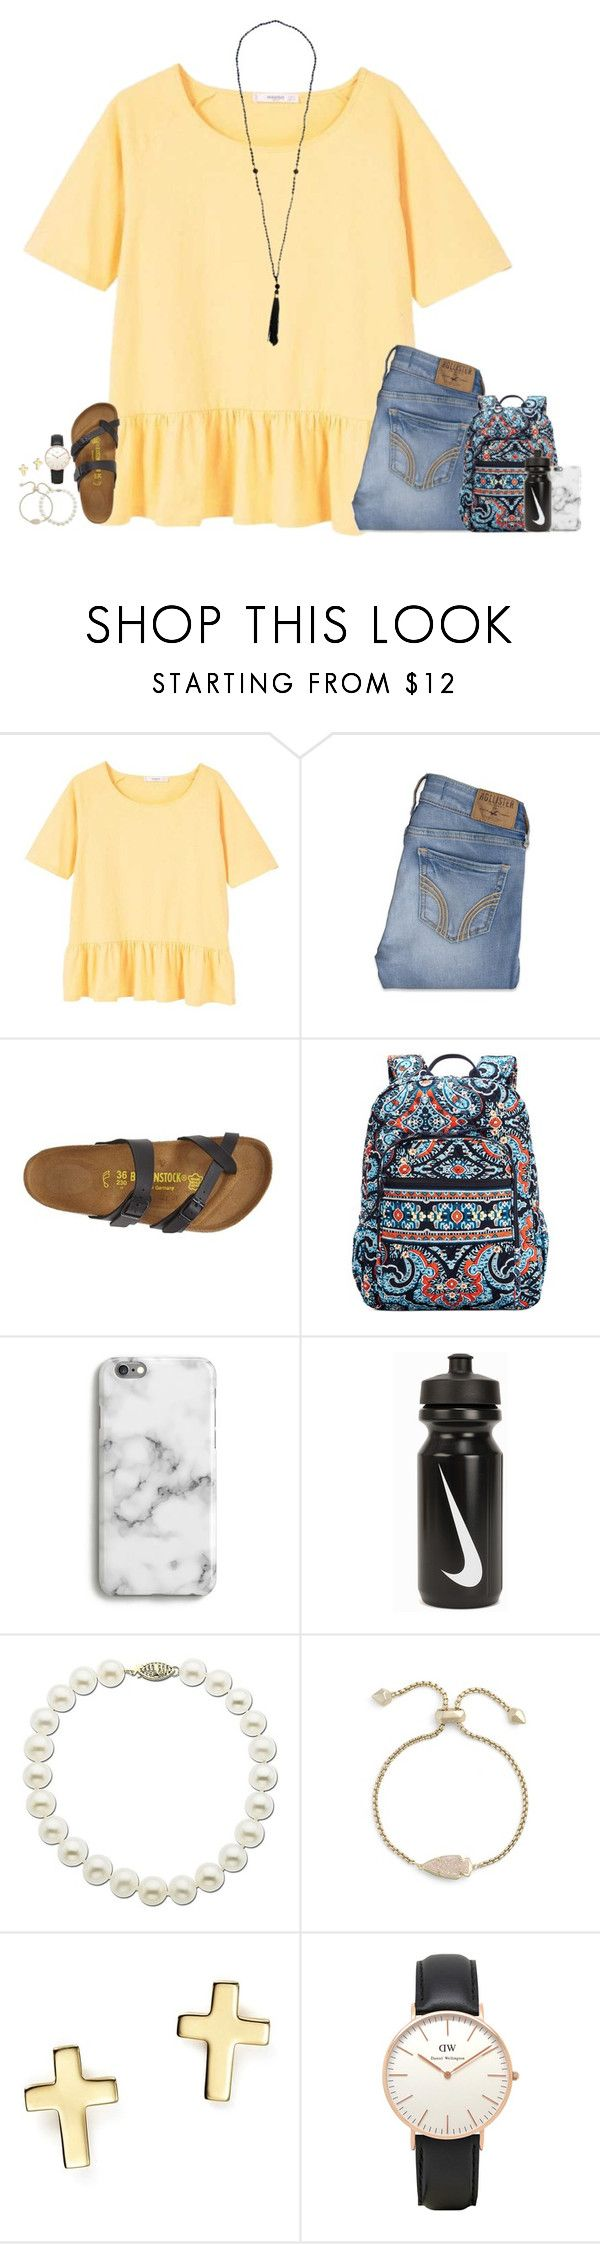 """""""first day of high school was """" by secfashion13 ❤ liked on Polyvore featuring MANGO, Hollister Co., Birkenstock, Vera Bradley, Harper & Blake, NIKE, Lord & Taylor, Kendra Scott, Bloomingdale's and Topshop"""